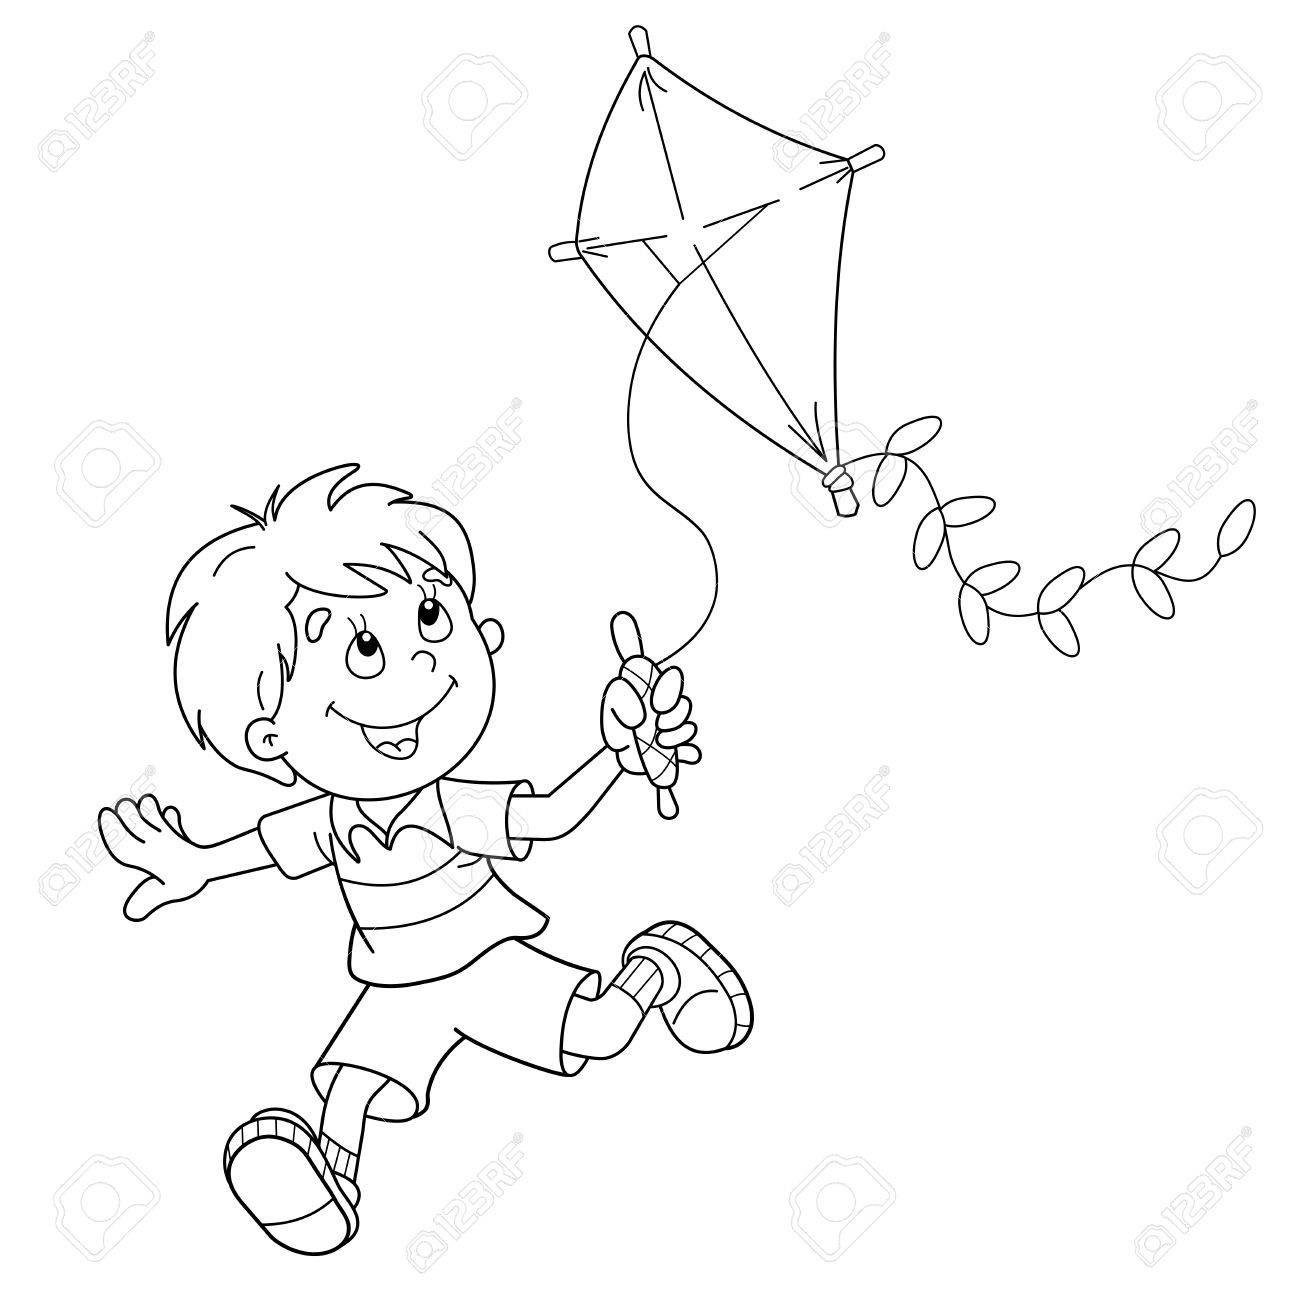 Coloring Page Outline Of Cartoon Boy Running With A Kite. Coloring ...